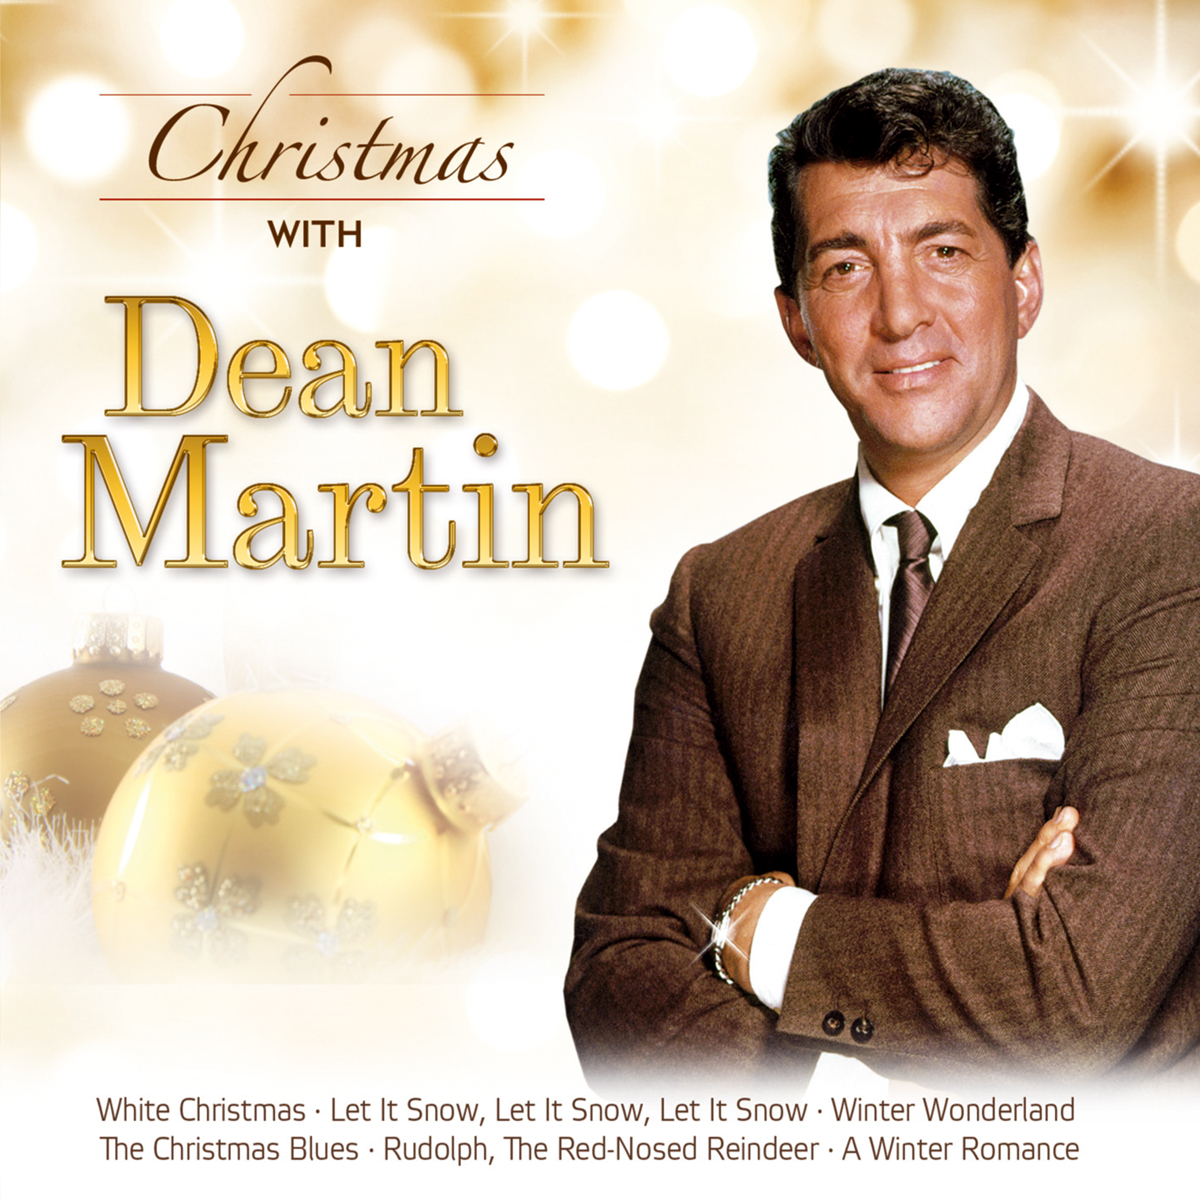 Dean Martin White Christmas.Details About Dean Martin Christmas With 1 Audio Cd